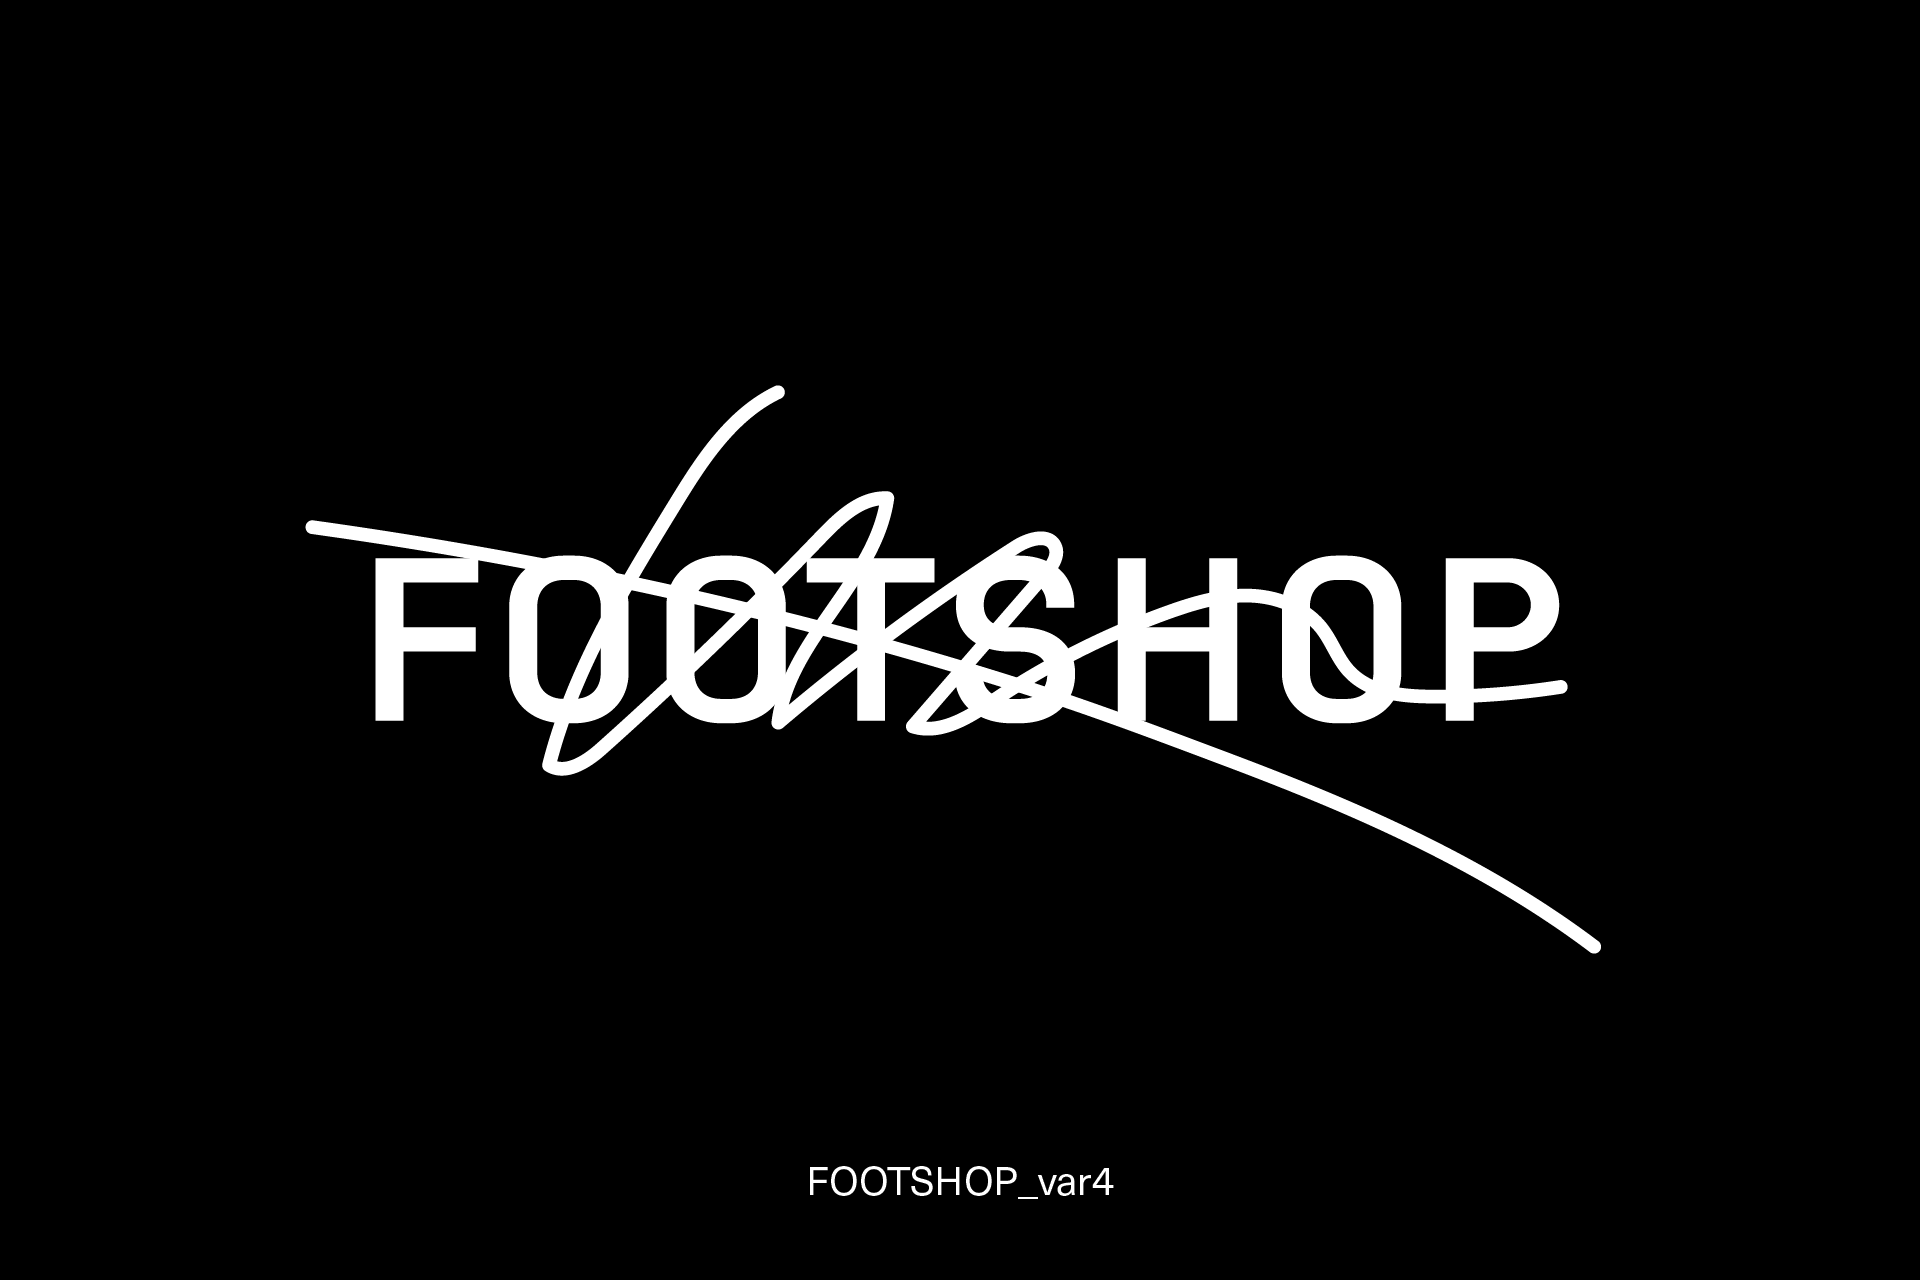 [:fr]LE NOUVEAU LOGO FOOTSHOP[:en]THE NEW FOOTSHOP LOGO[:]